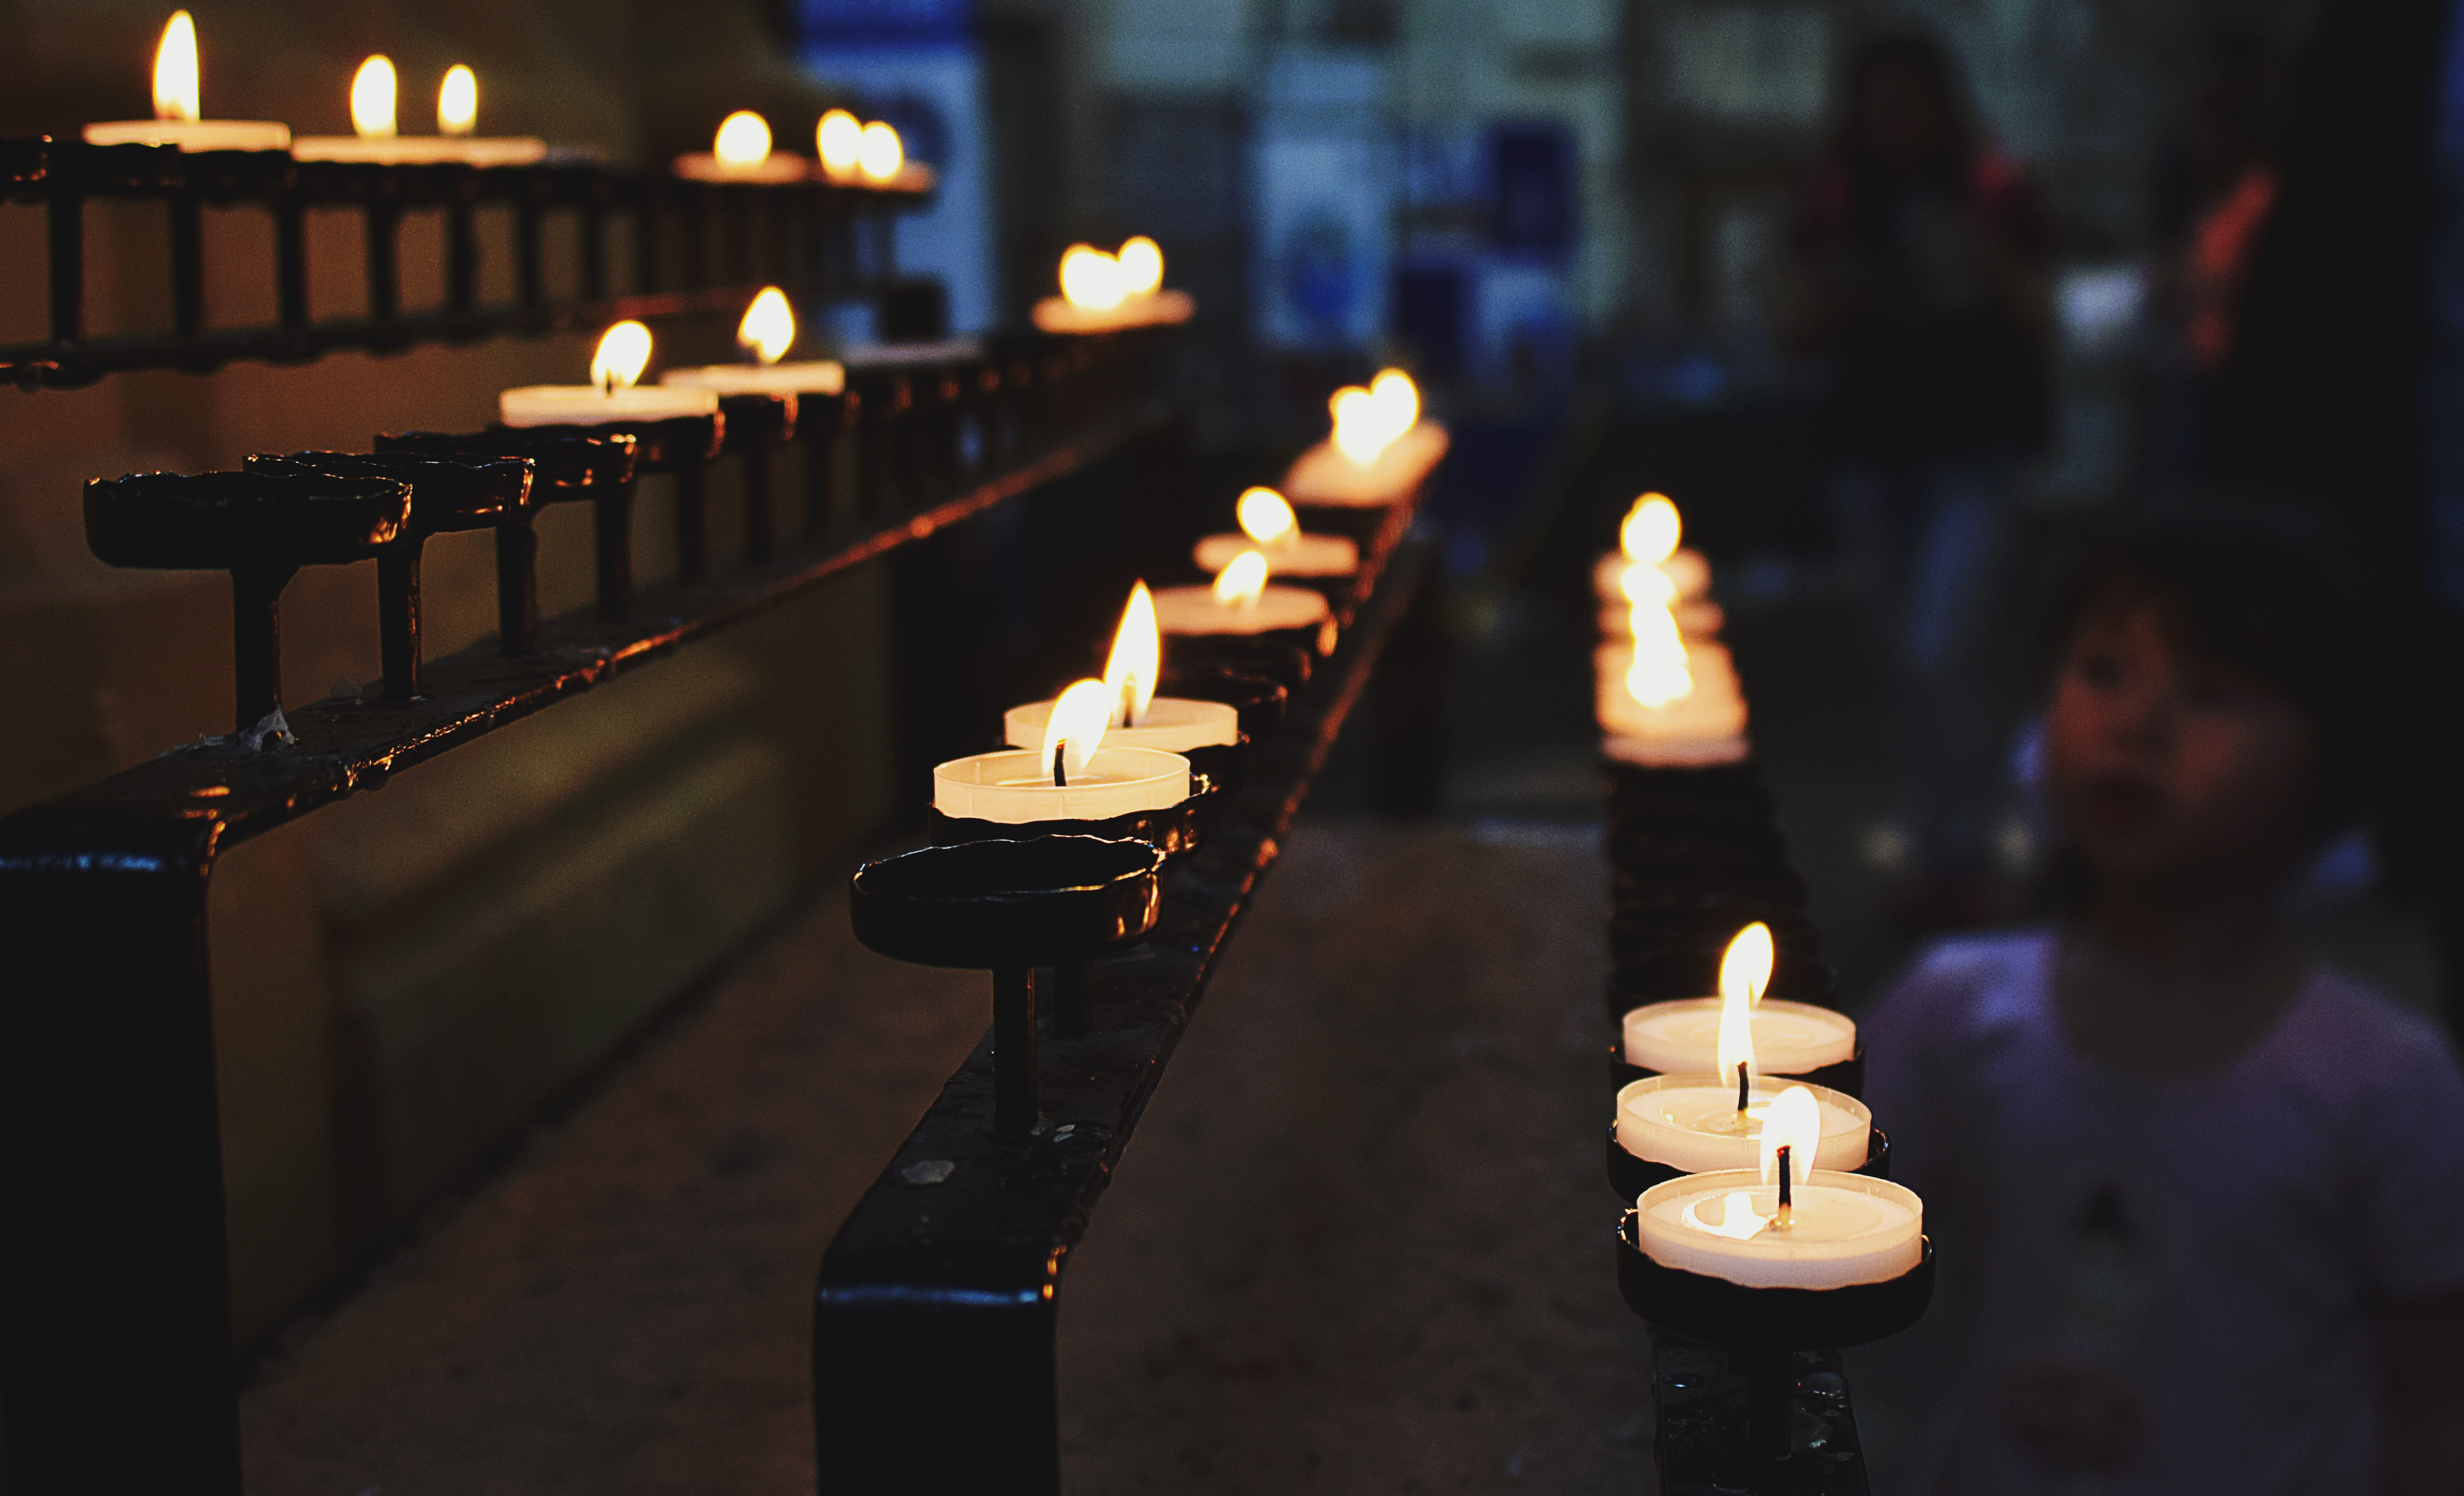 White Tealight Candles Lit during Nighttime, Adult, Group, Room, Religion, HQ Photo